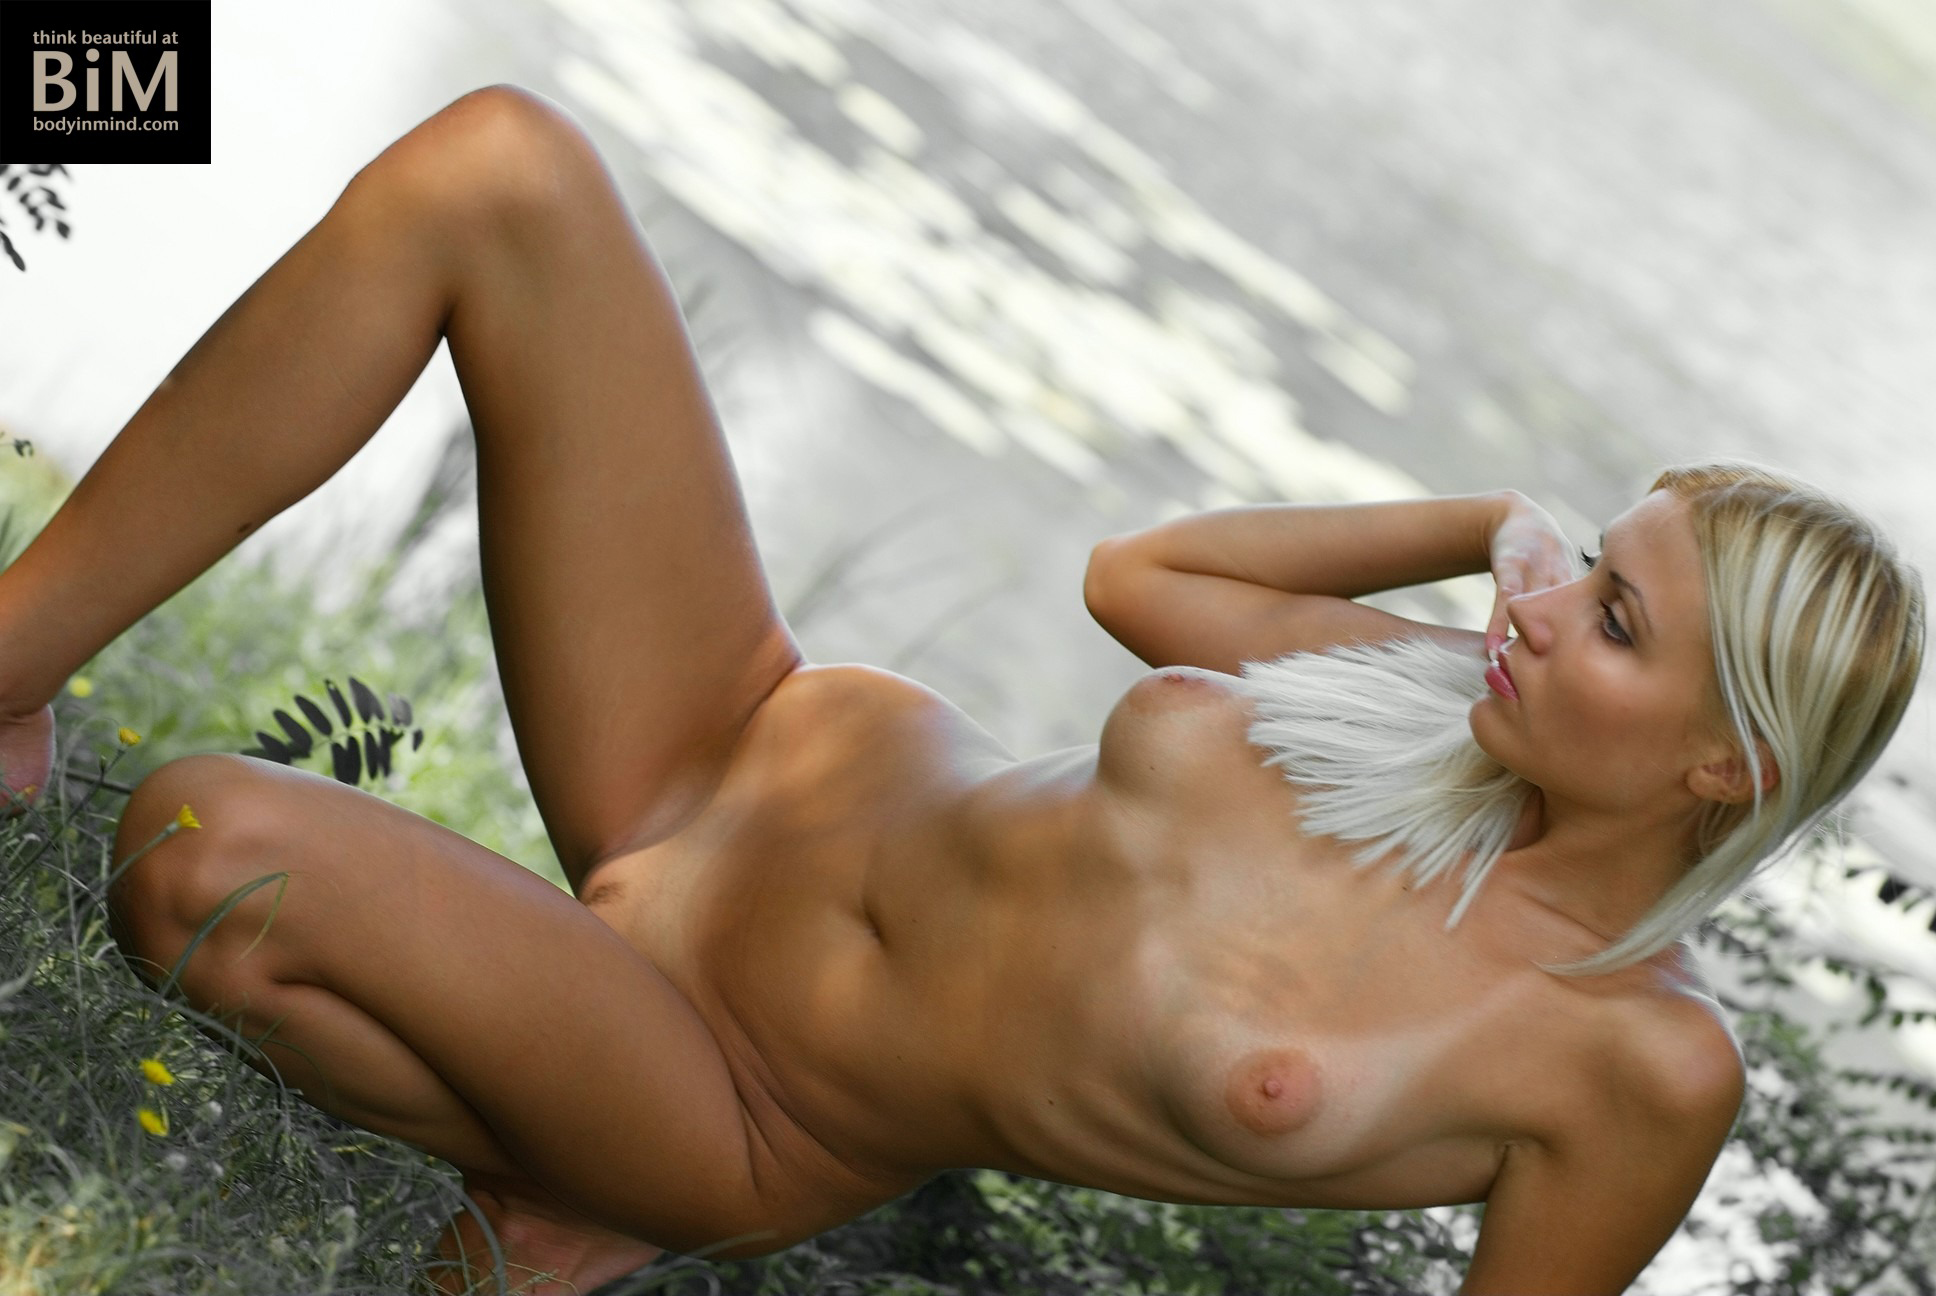 Amima Naked Boobs in Nature for Body in Mind